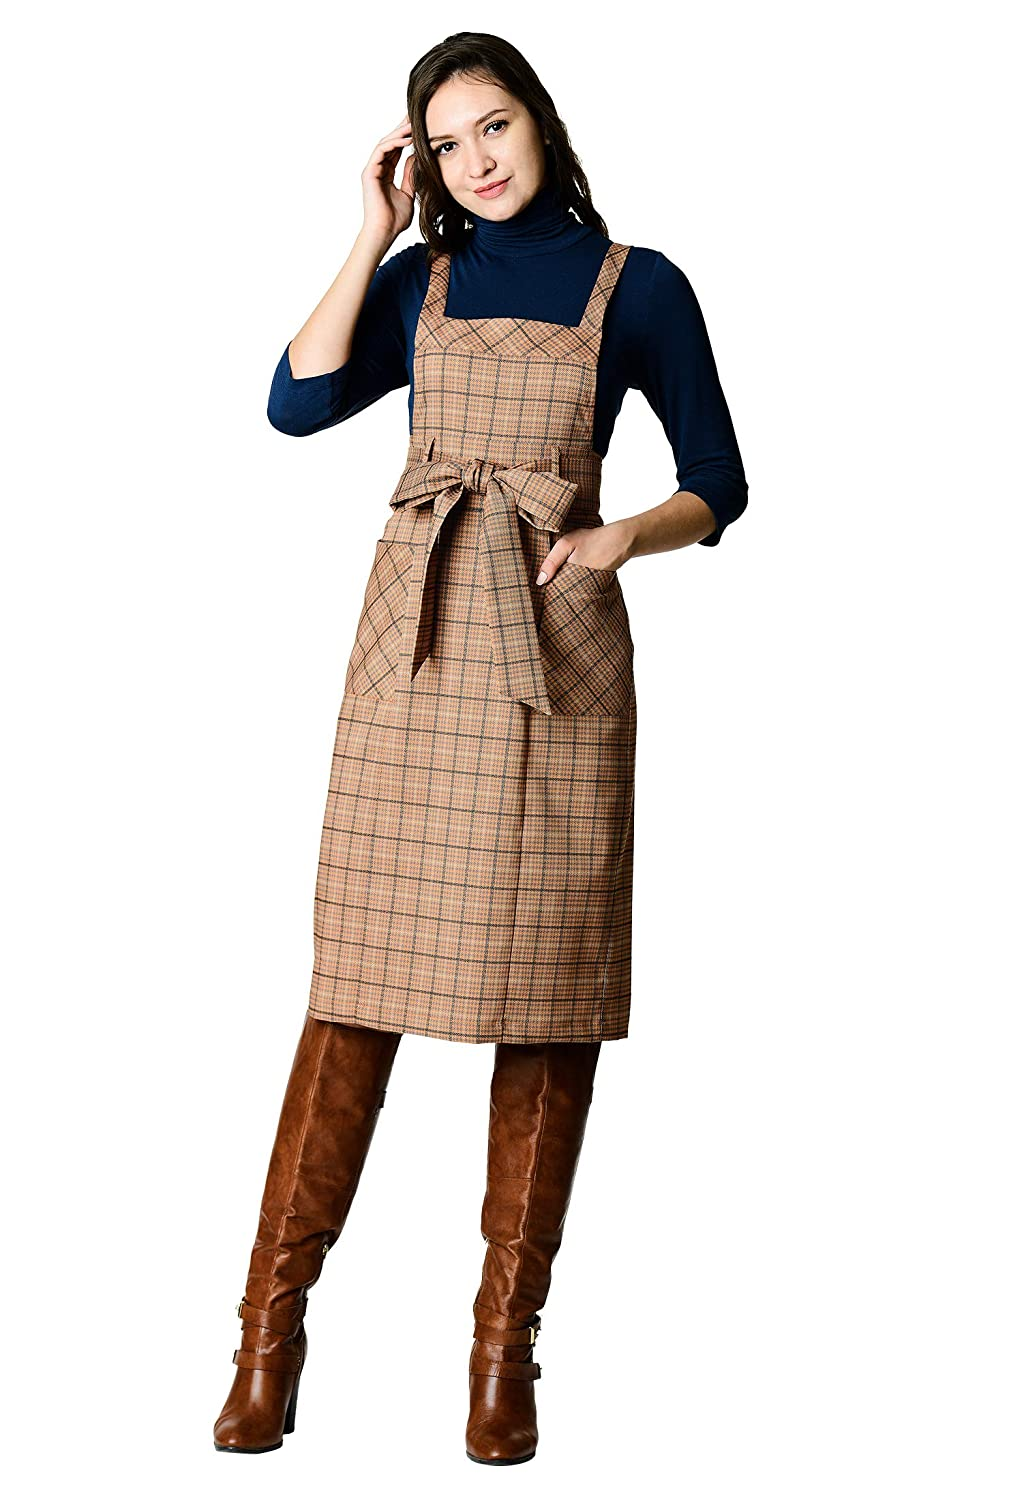 1950s Swing Dresses | 50s Swing Dress eShakti Womens Sash tie Twill Plaid Pinafore Dress $99.95 AT vintagedancer.com